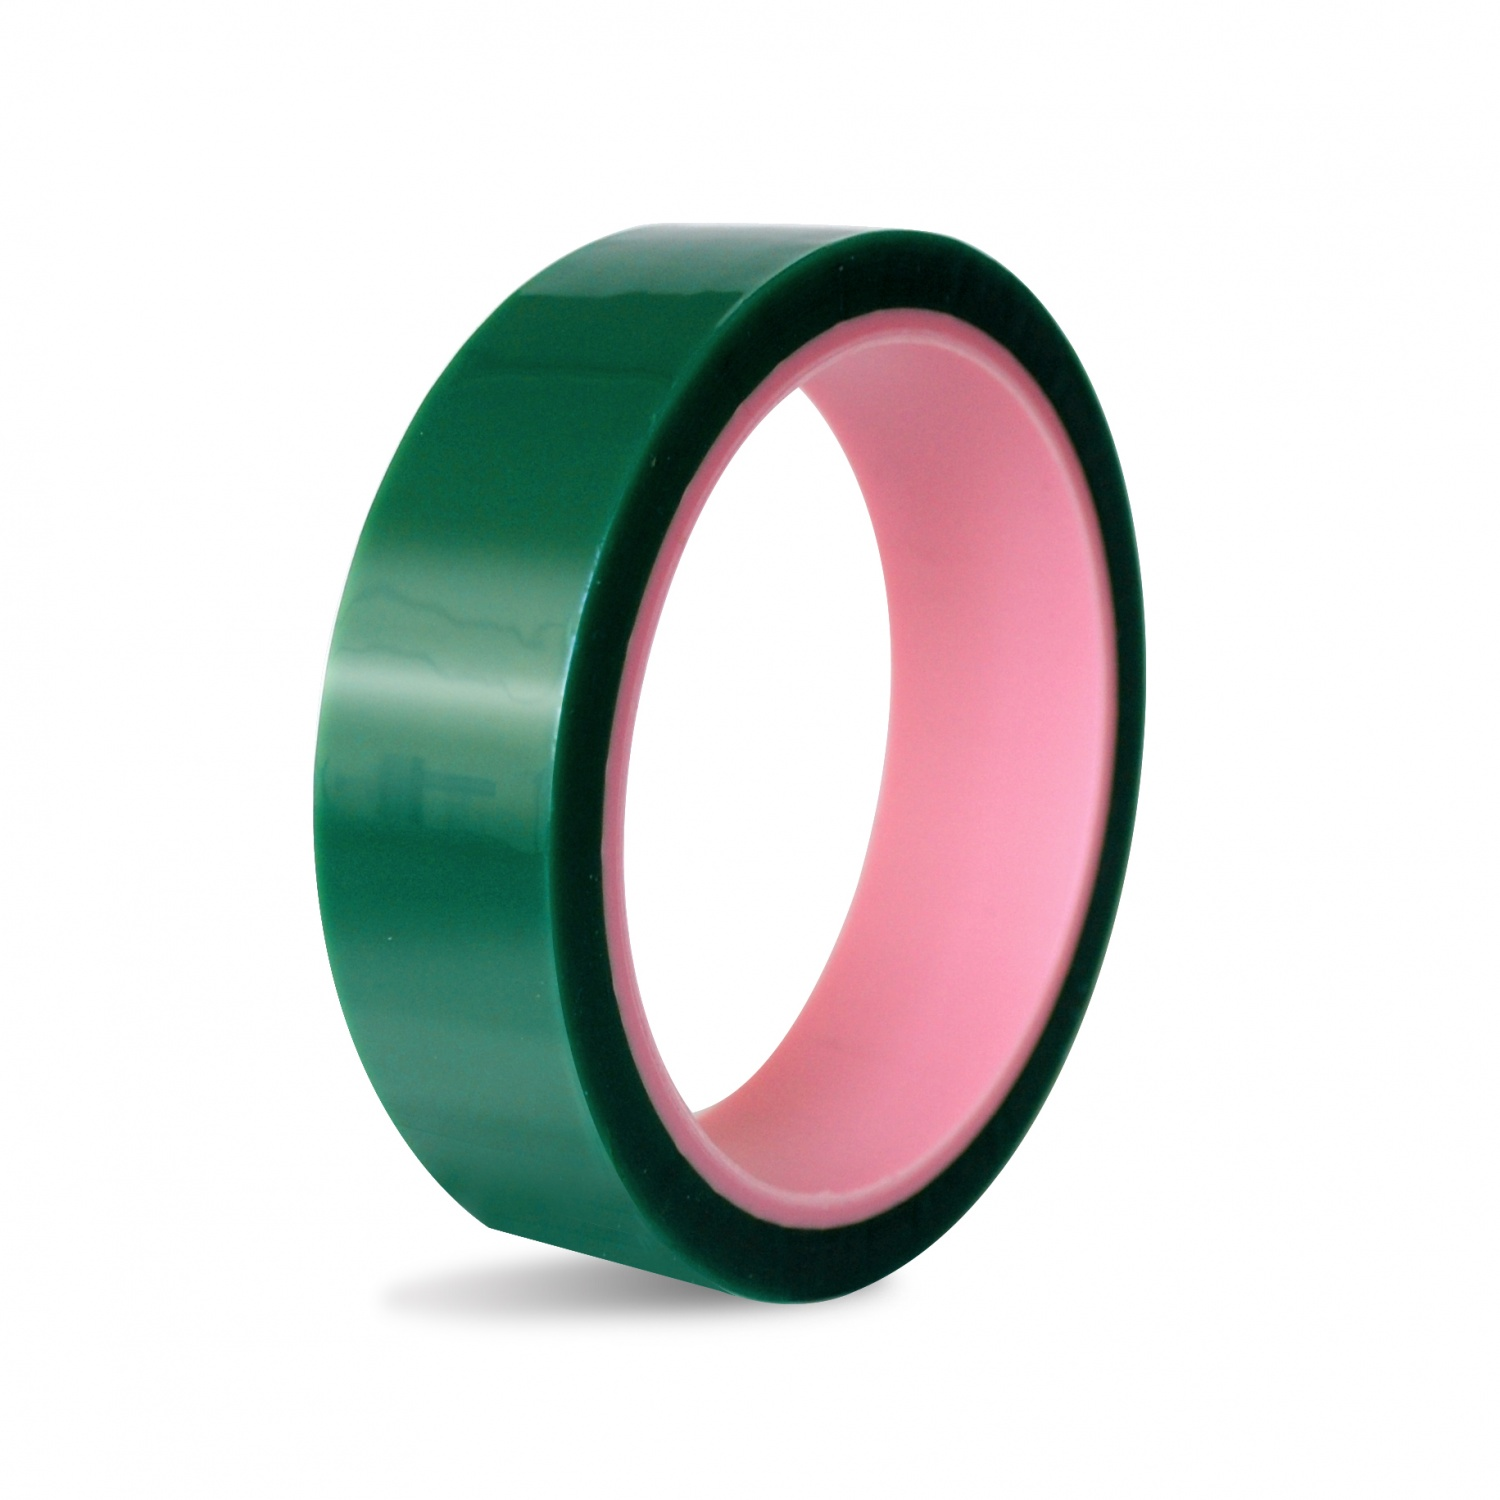 Antistatic Green polyester Tape E1-TH862G